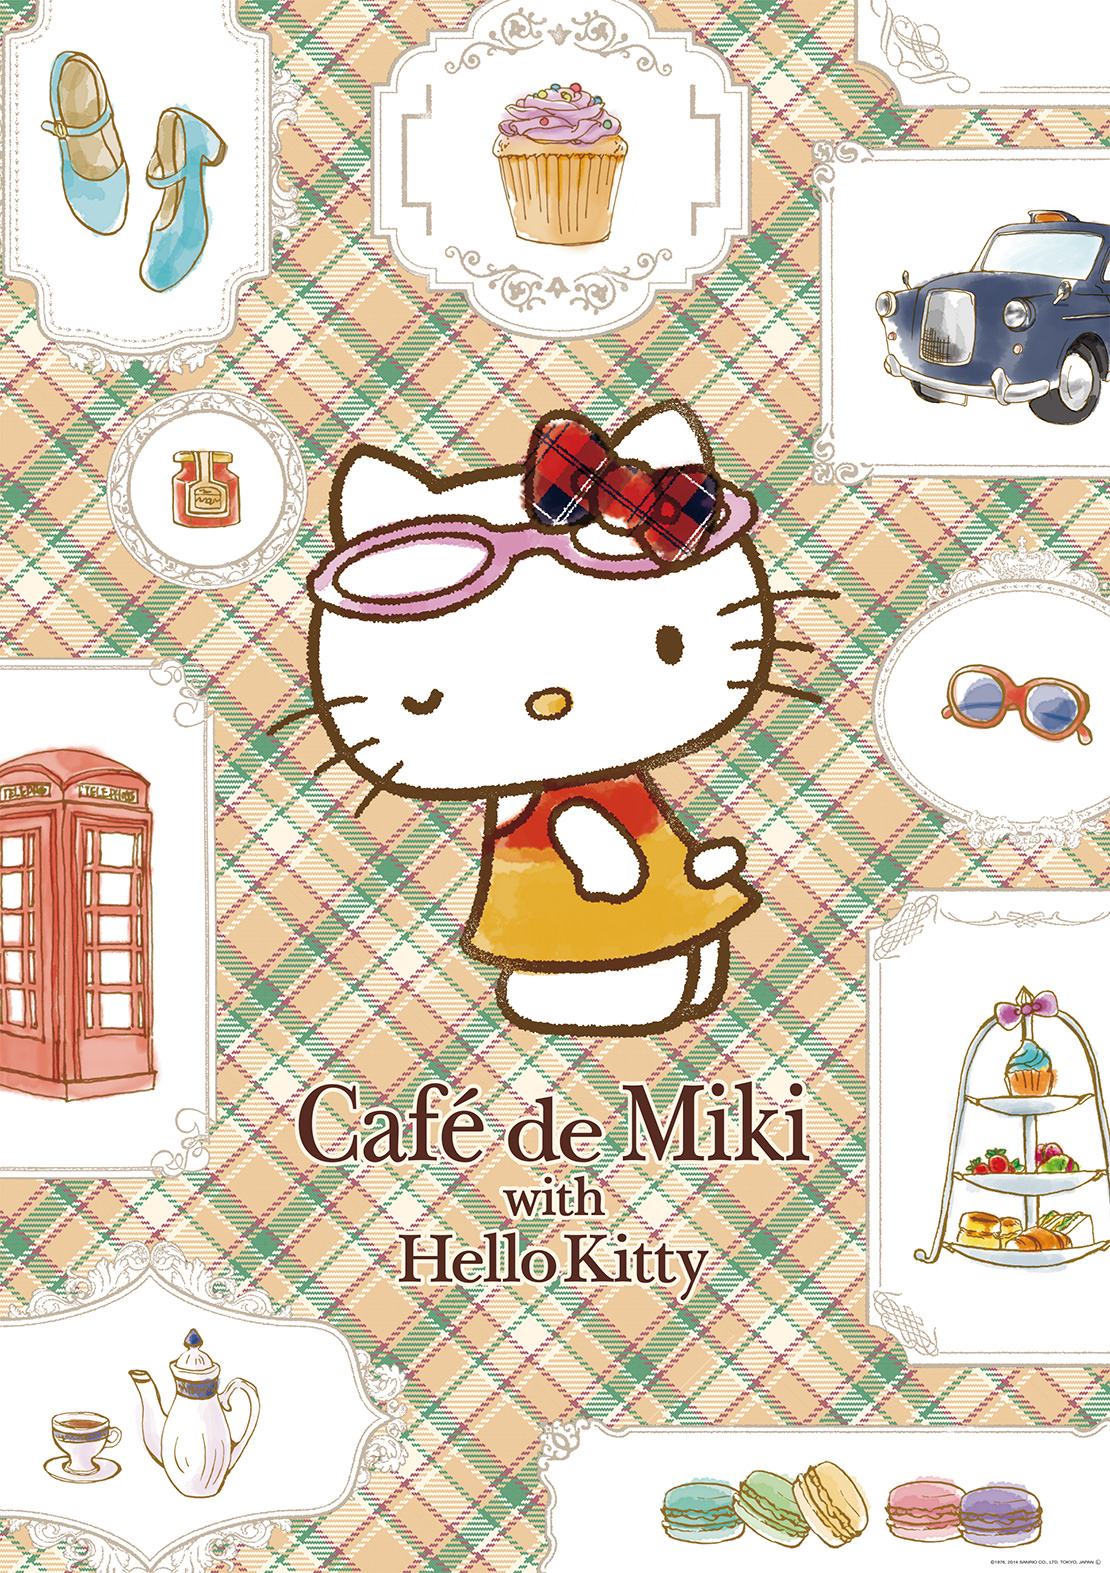 Café de Miki with Hello Kitty 店内掲示ポスター